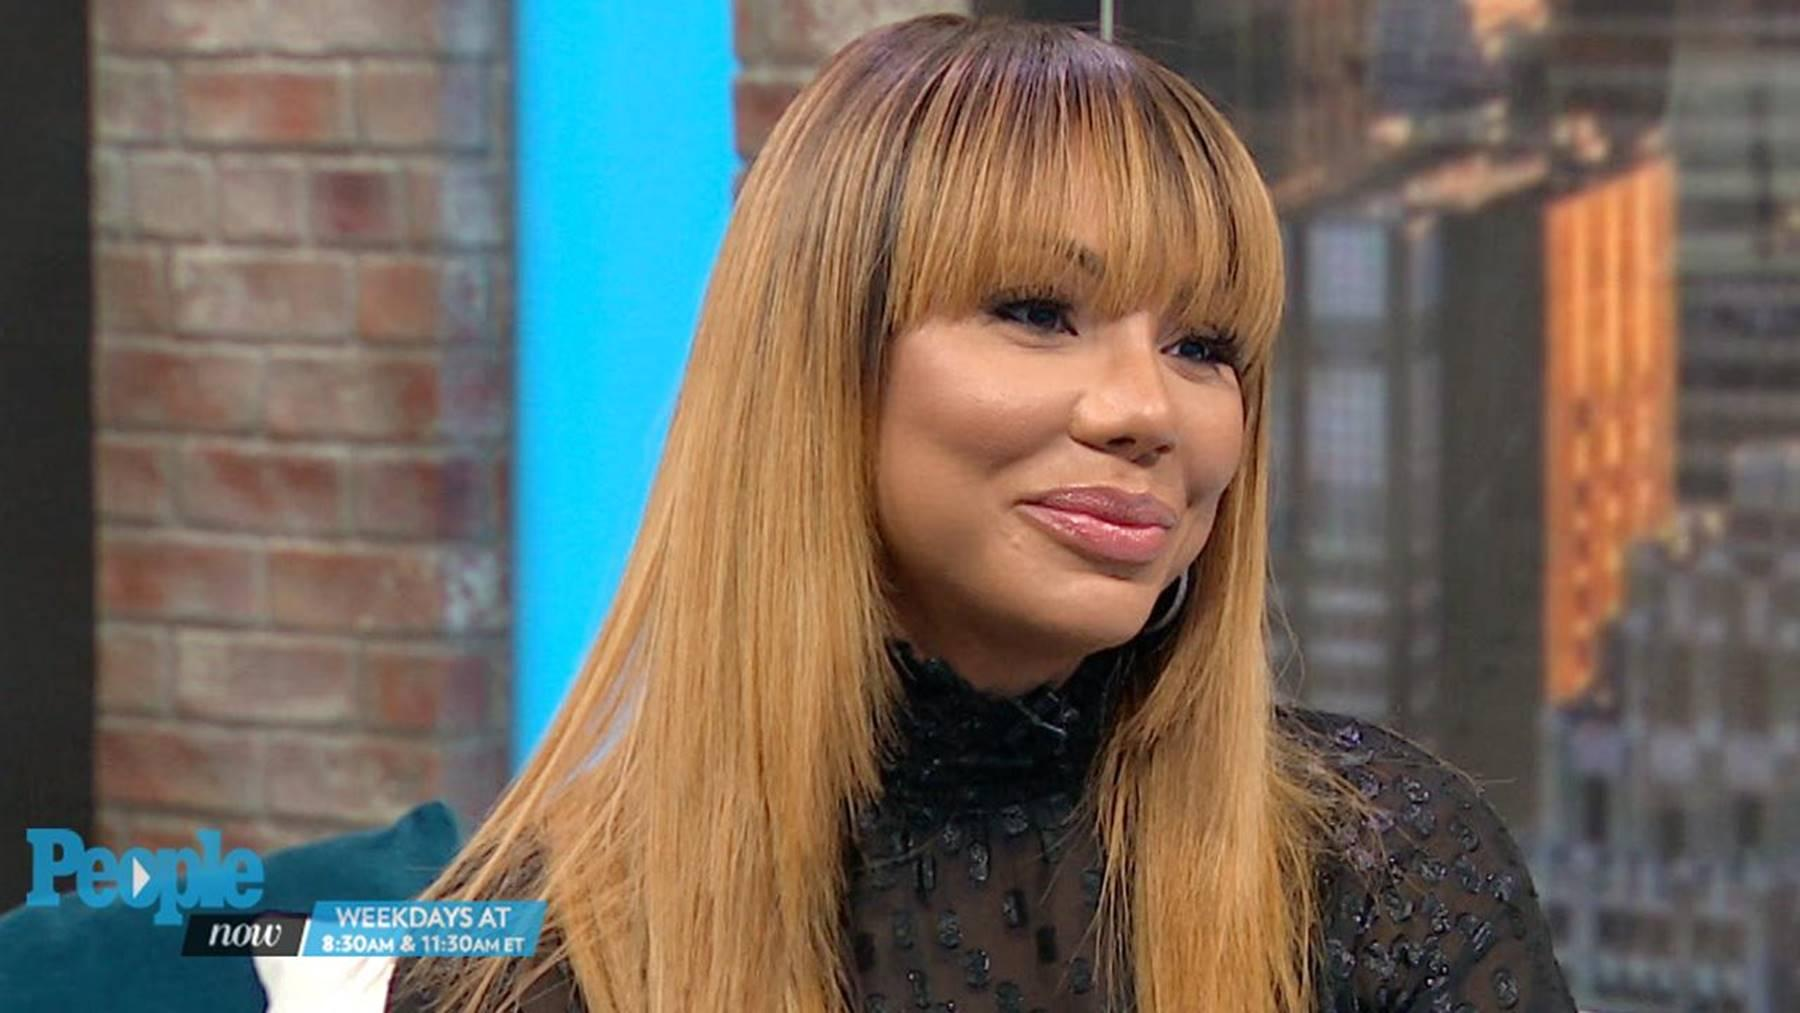 Tamar Braxton Opens Up About Her Future Show While Shading 'The Real' And Addressing The Gabe Solis Controversy